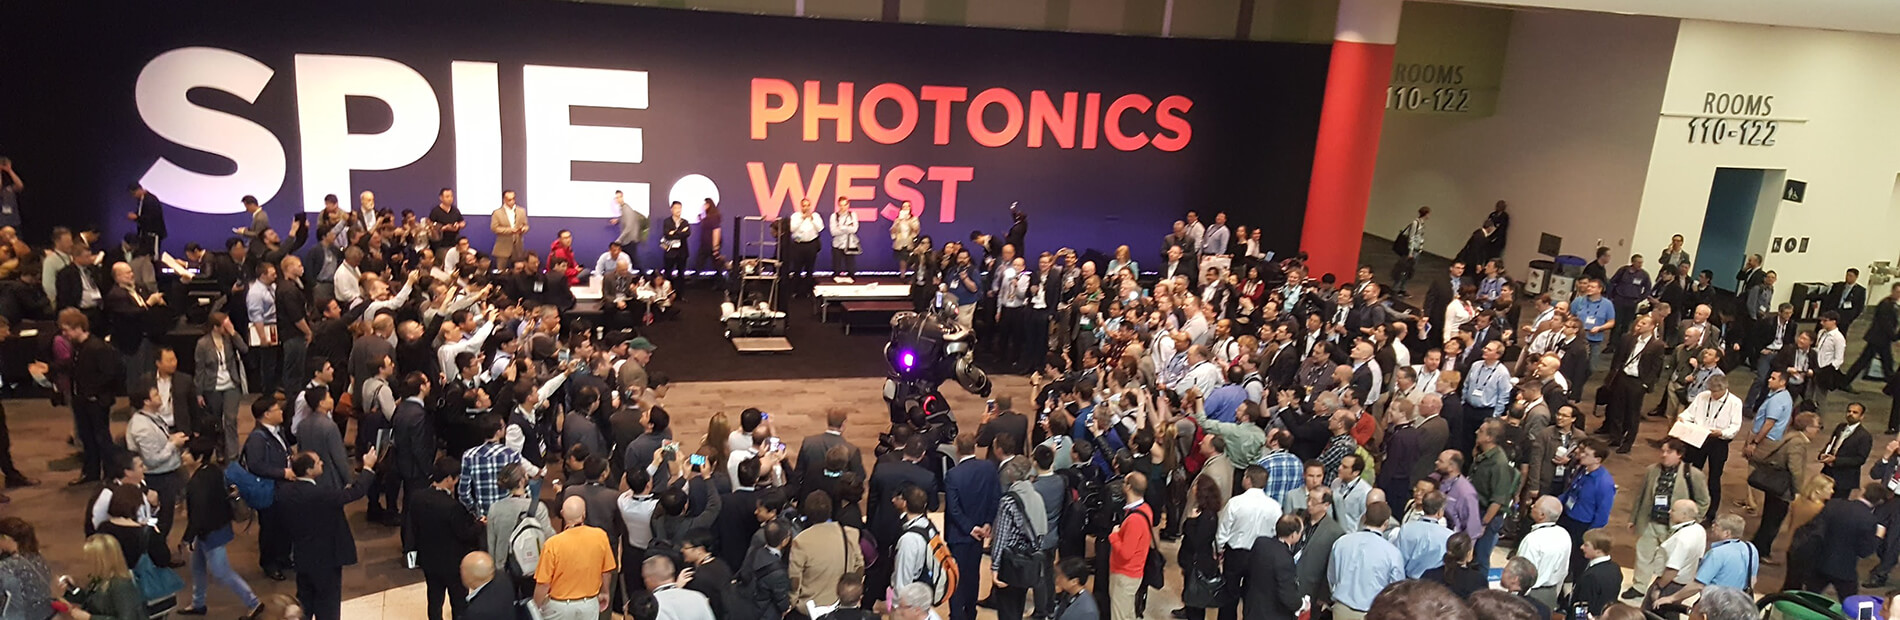 spie-photonics-west-2016